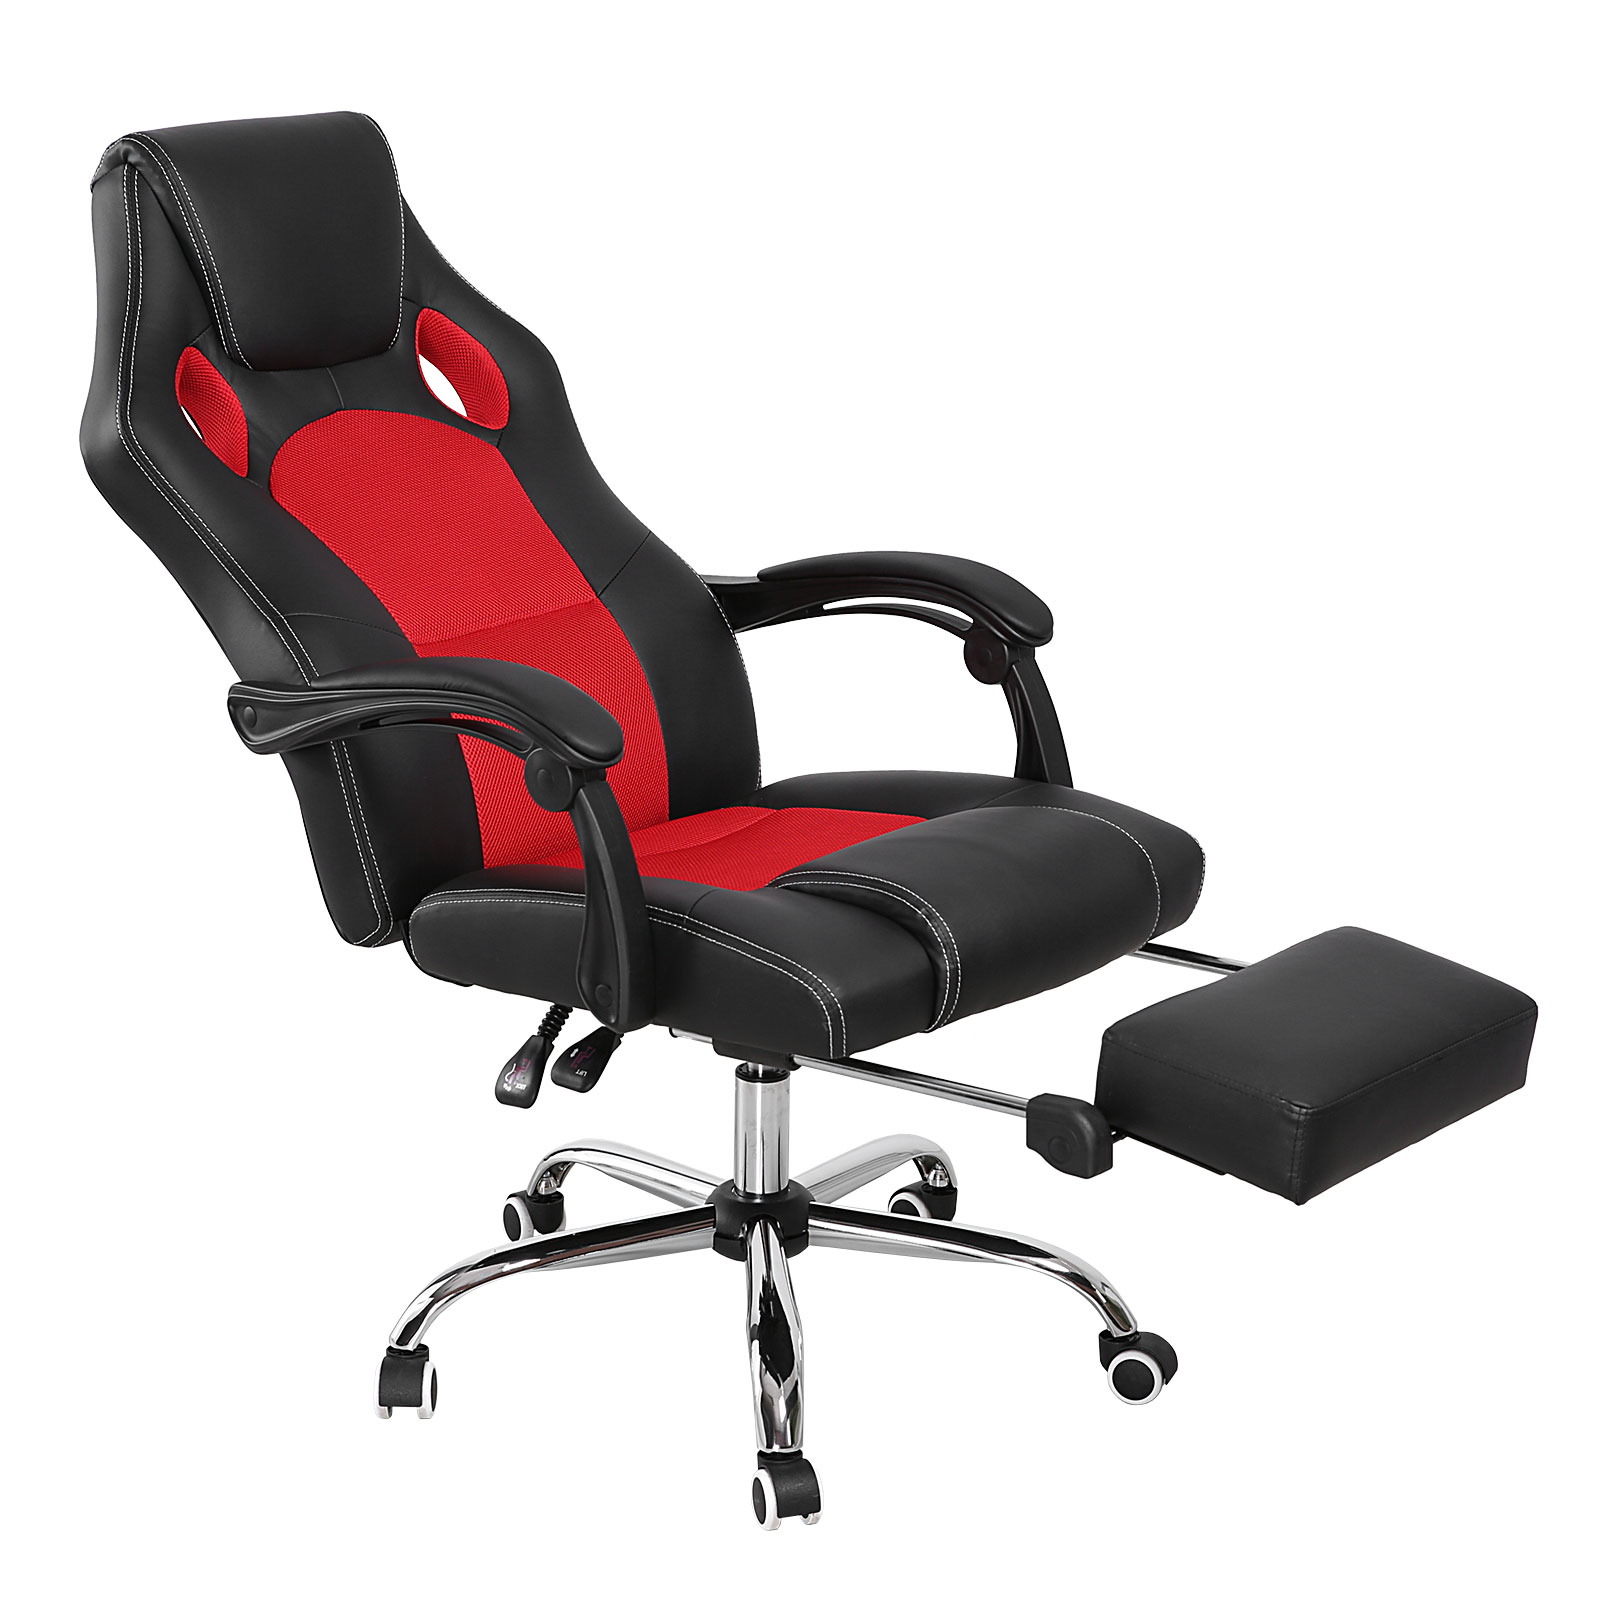 Racing Seat Office Chair Racing Office Chair High Back Gaming Car Style Executive